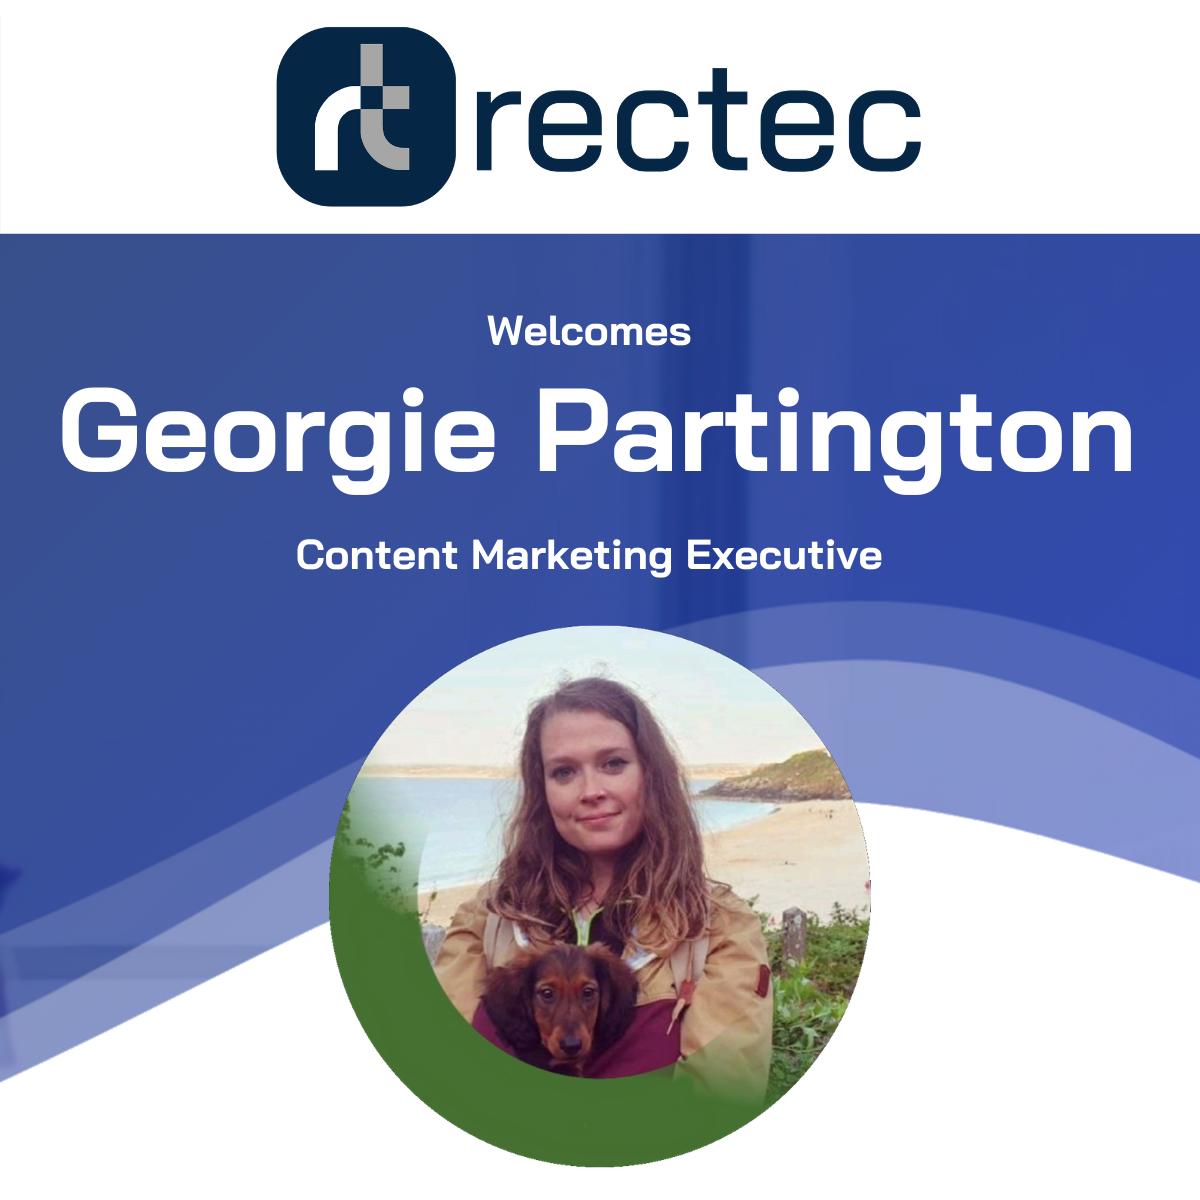 Rectec Logo and photo of Georgie Partington. Text welcoming her to the Rectec team as Content Marketing Executive.